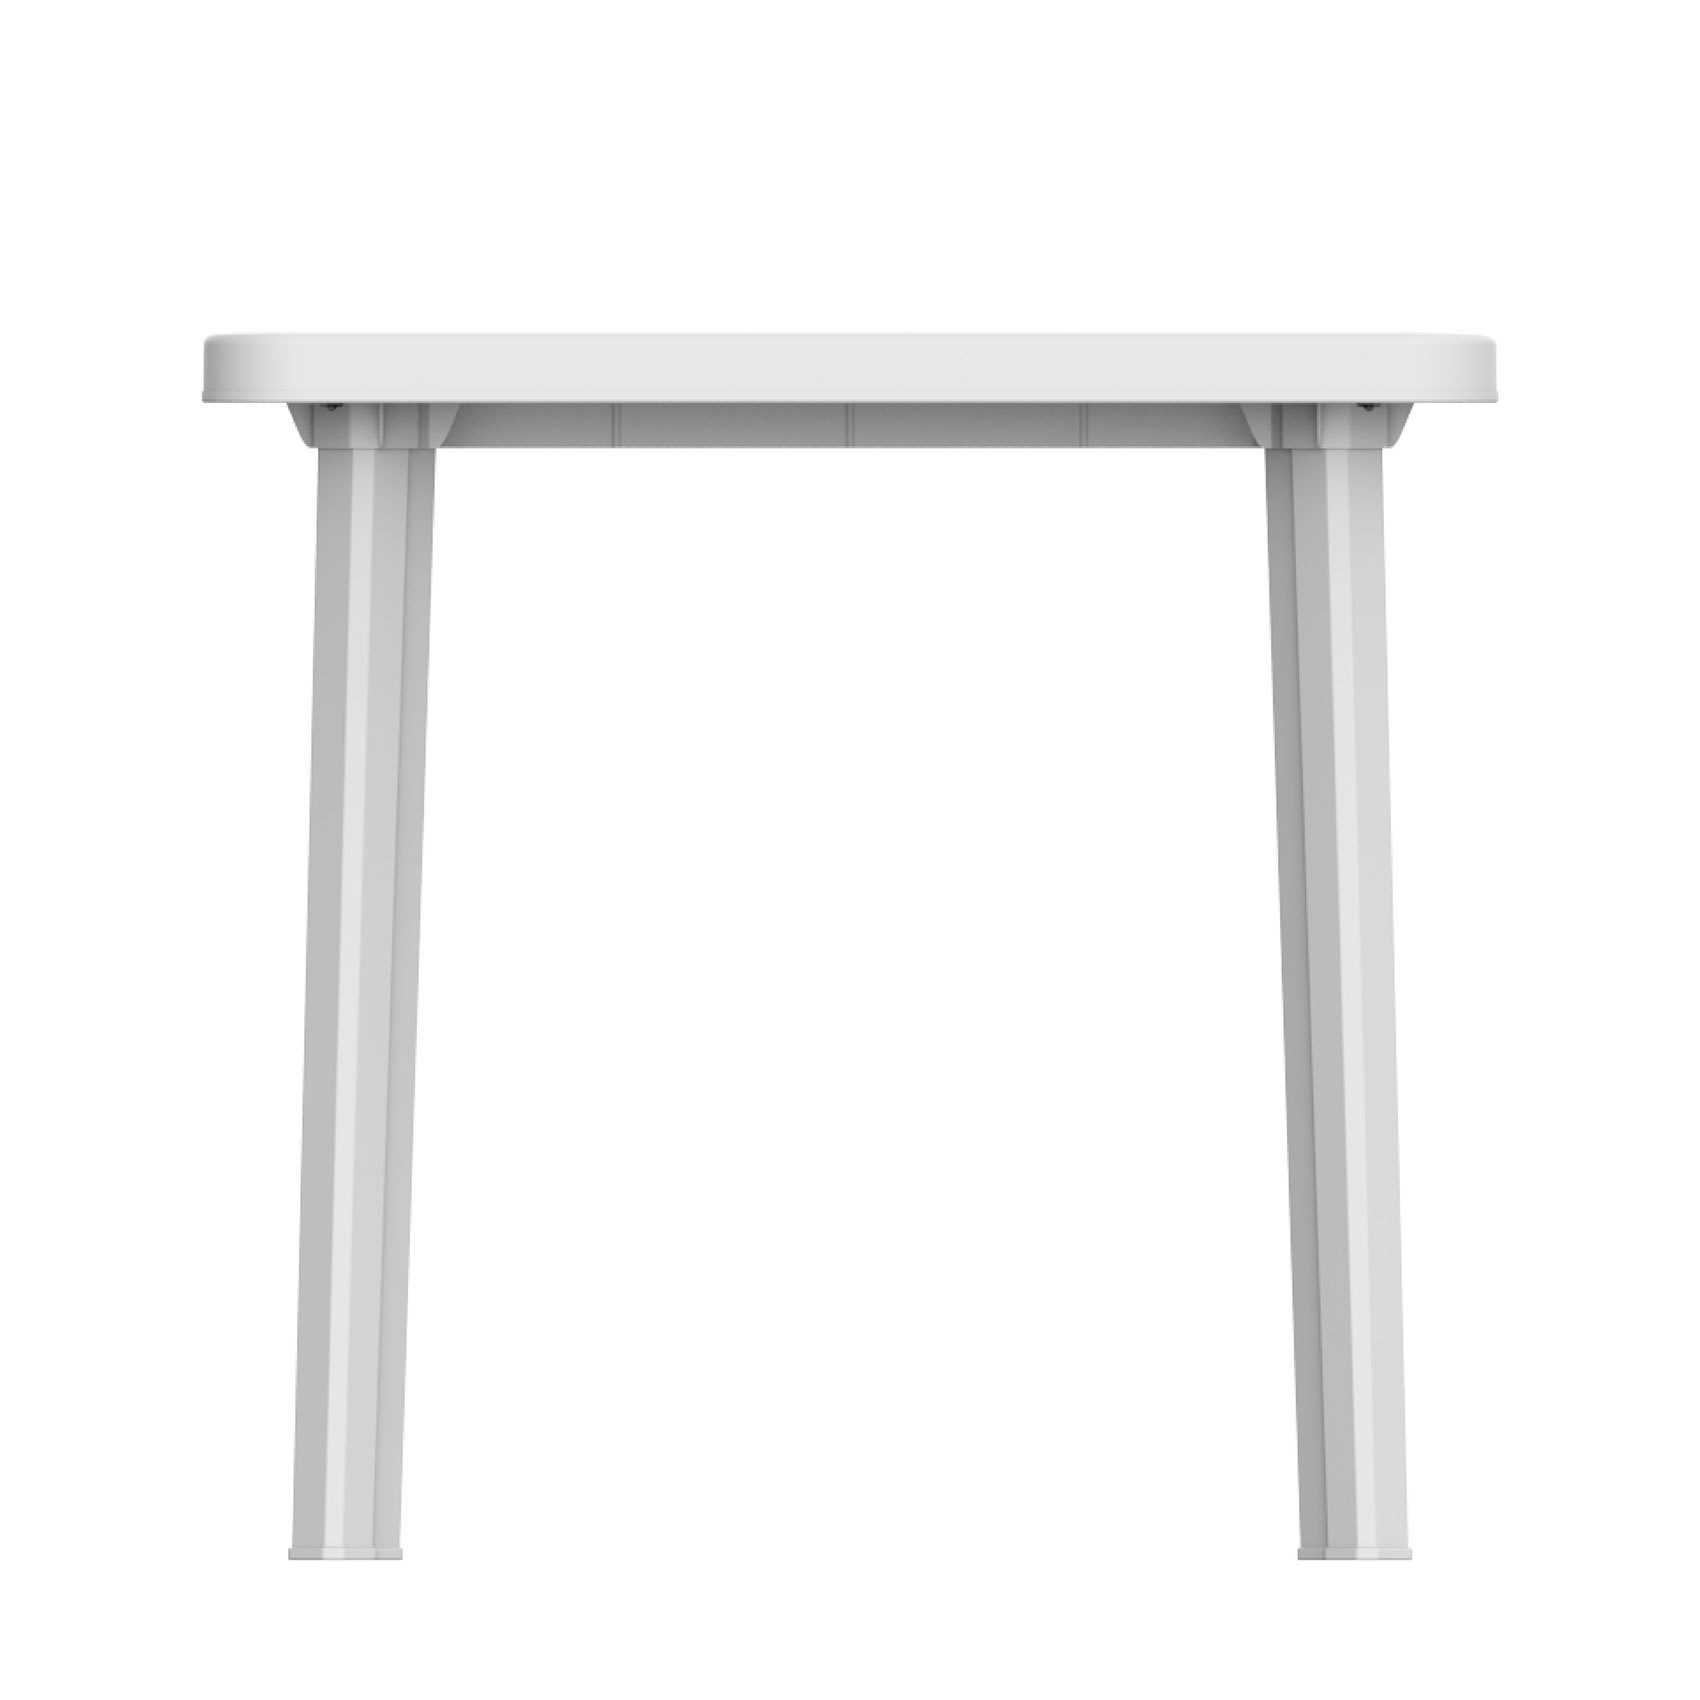 Buy Cosmo Square Table 85cm Online In Uae Carrefour Outdoor Products Backpack Abu